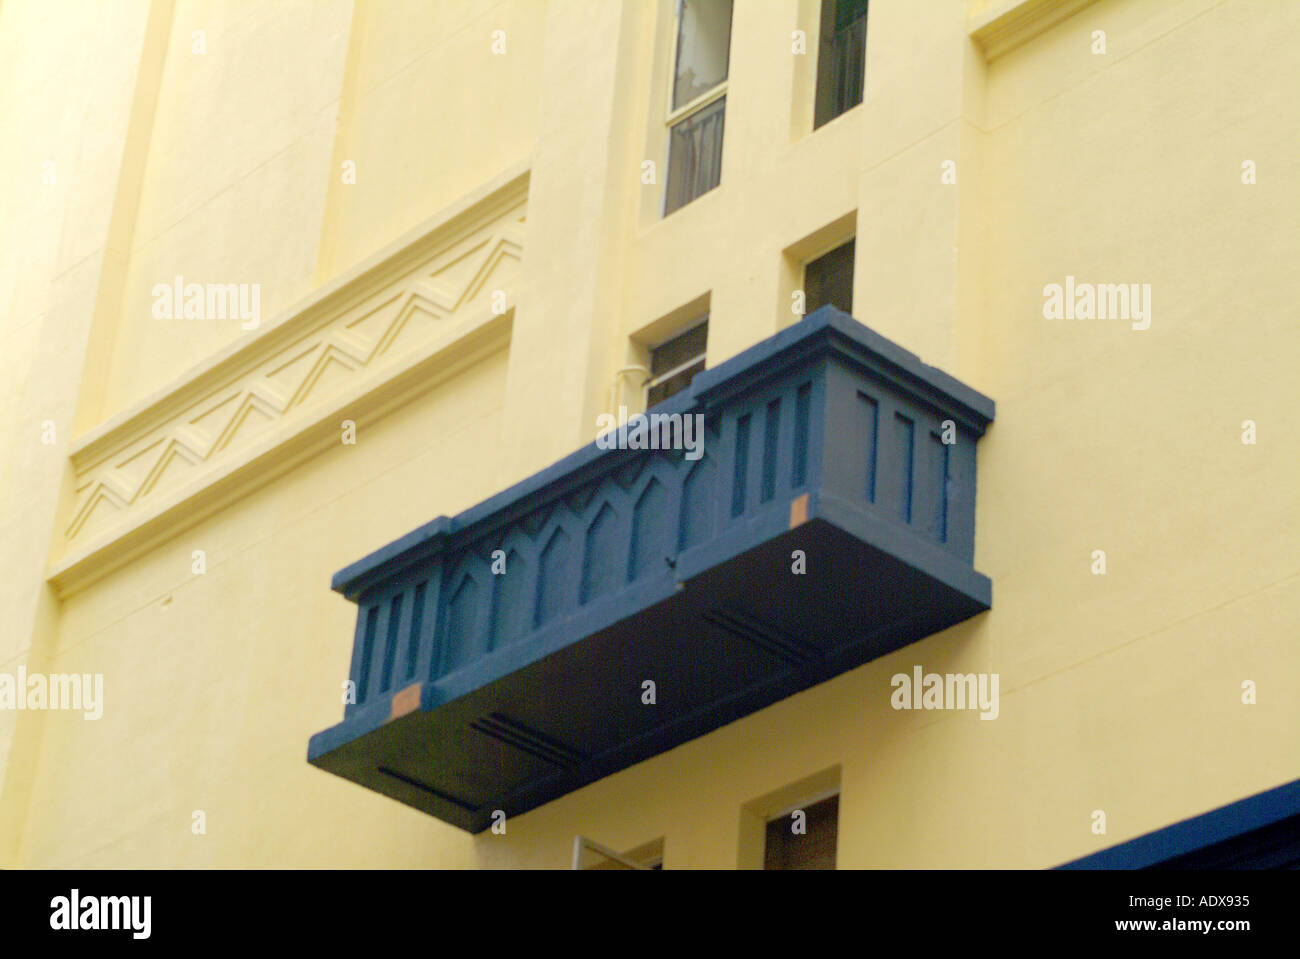 Architecture balcony art deco restored preserved windows yellow blue facade frontspiece architectural wall 50 s stylish style - Stock Image